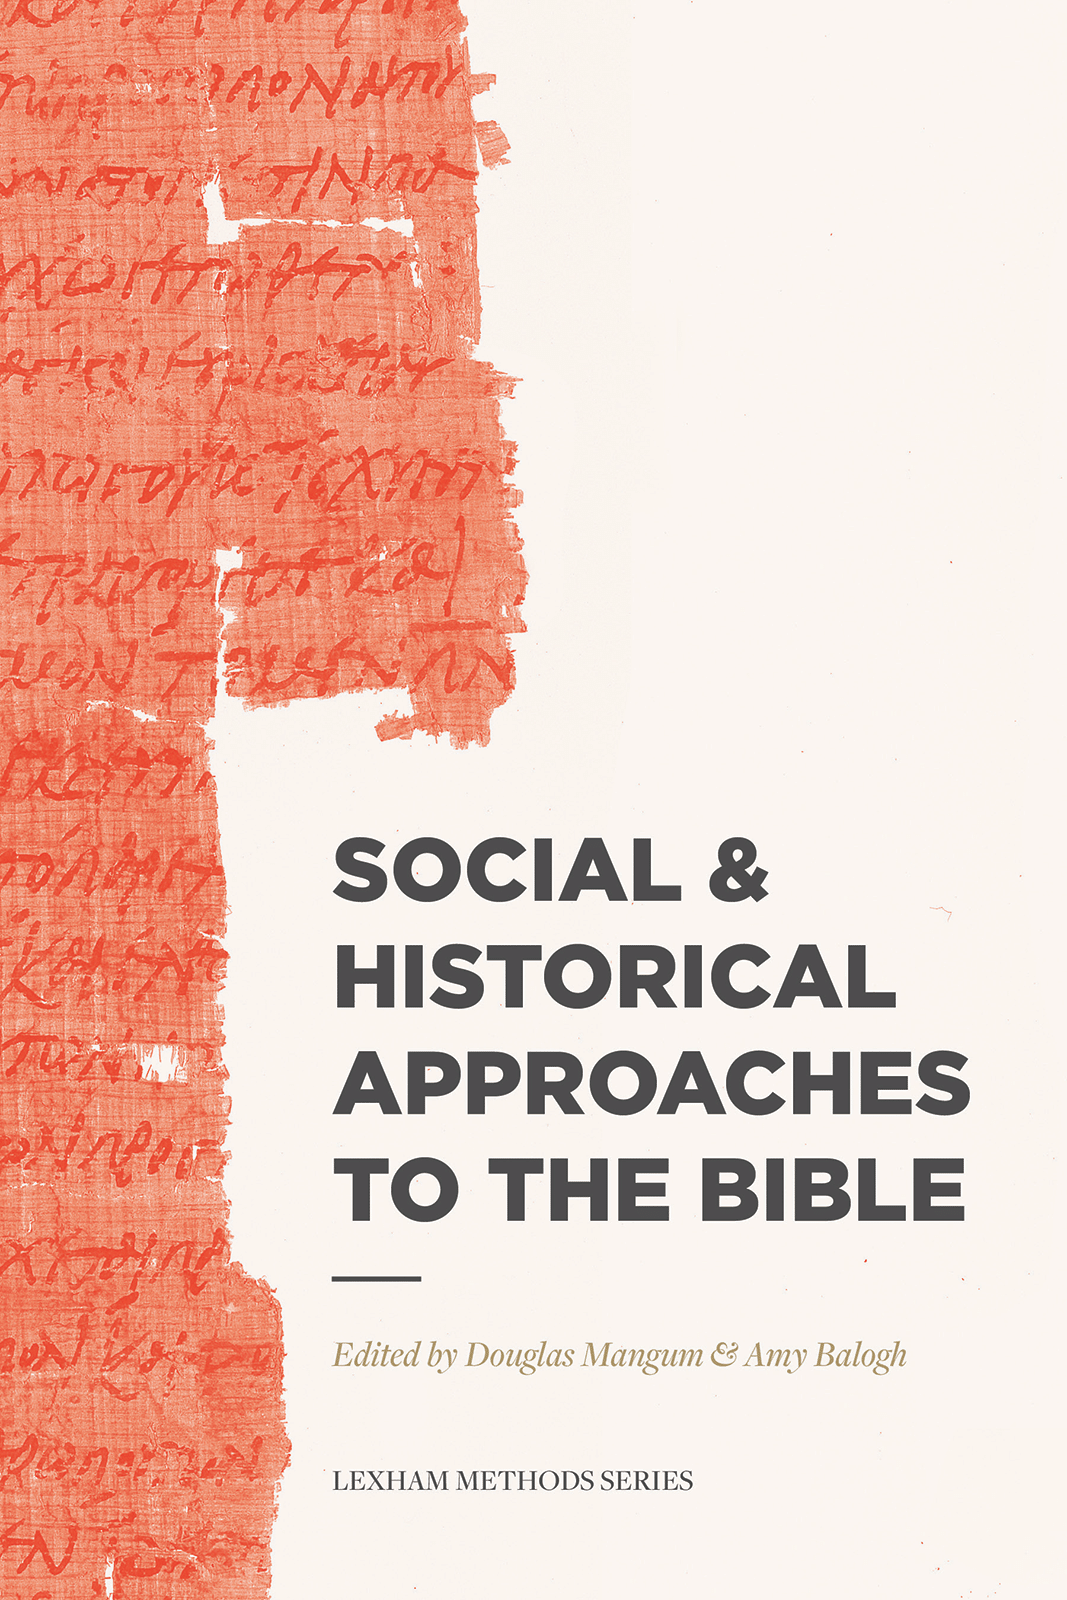 Social and Historical Approaches to the Bible